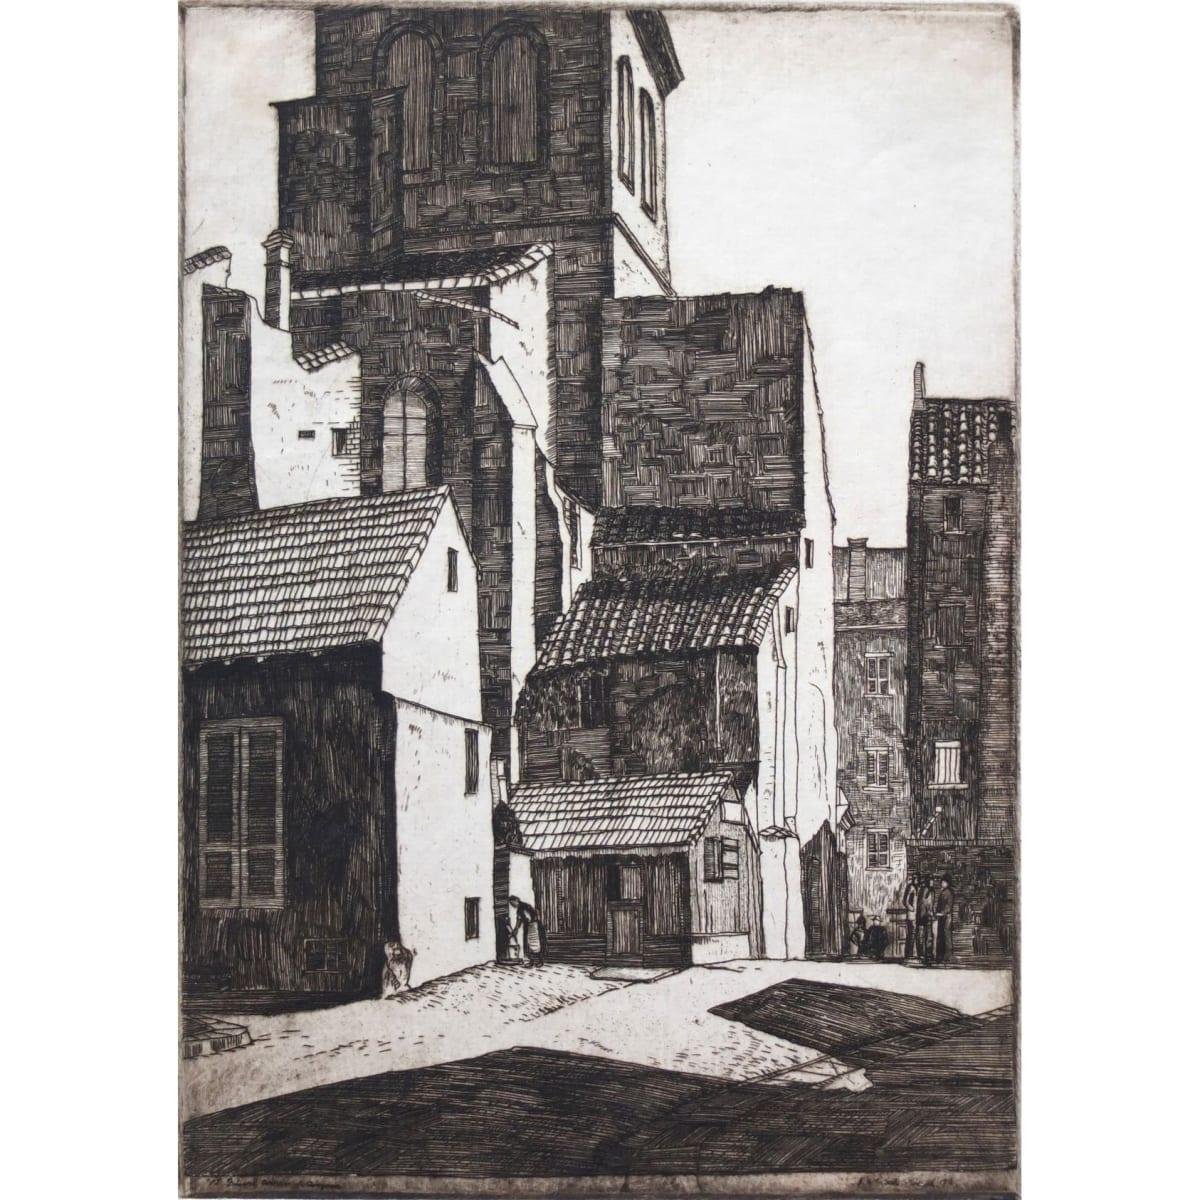 James McIntosh Patrick A quaint corner of Avignon, 1927 signed, titled and dated 1927 in plate etching plate size: 8 3/8 x 5 7/8 inches; sheet size: 11 1/2 x 9 1/8 inches